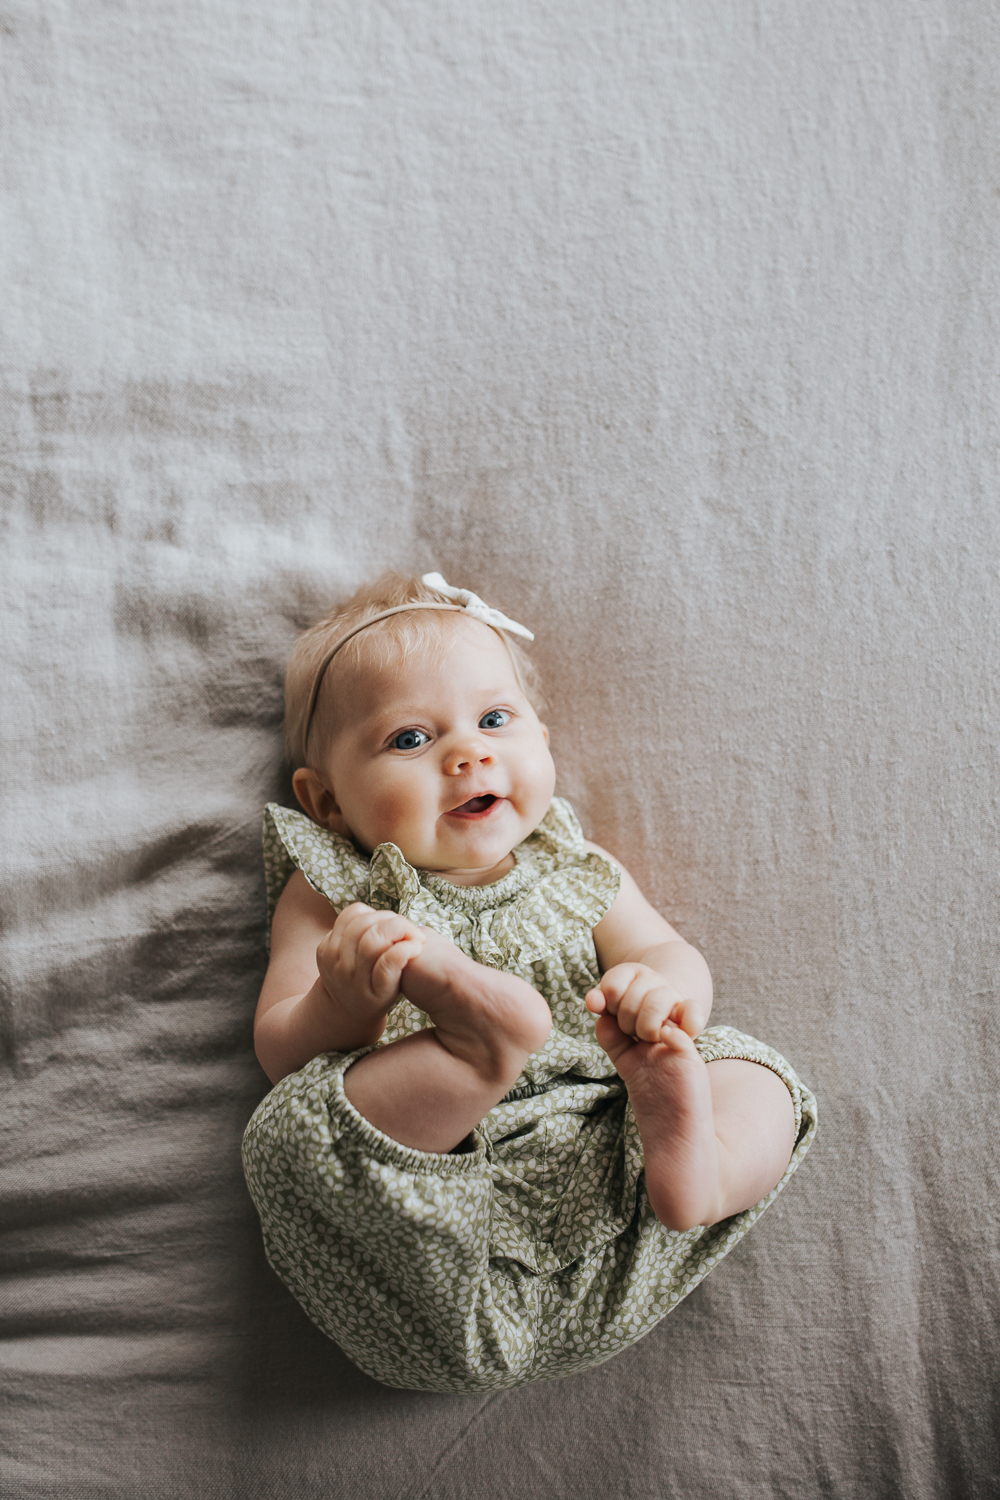 6 month old baby girl with blonde hair and blue eyes lying on bed holding feet -Markham Family Lifestyle Photography